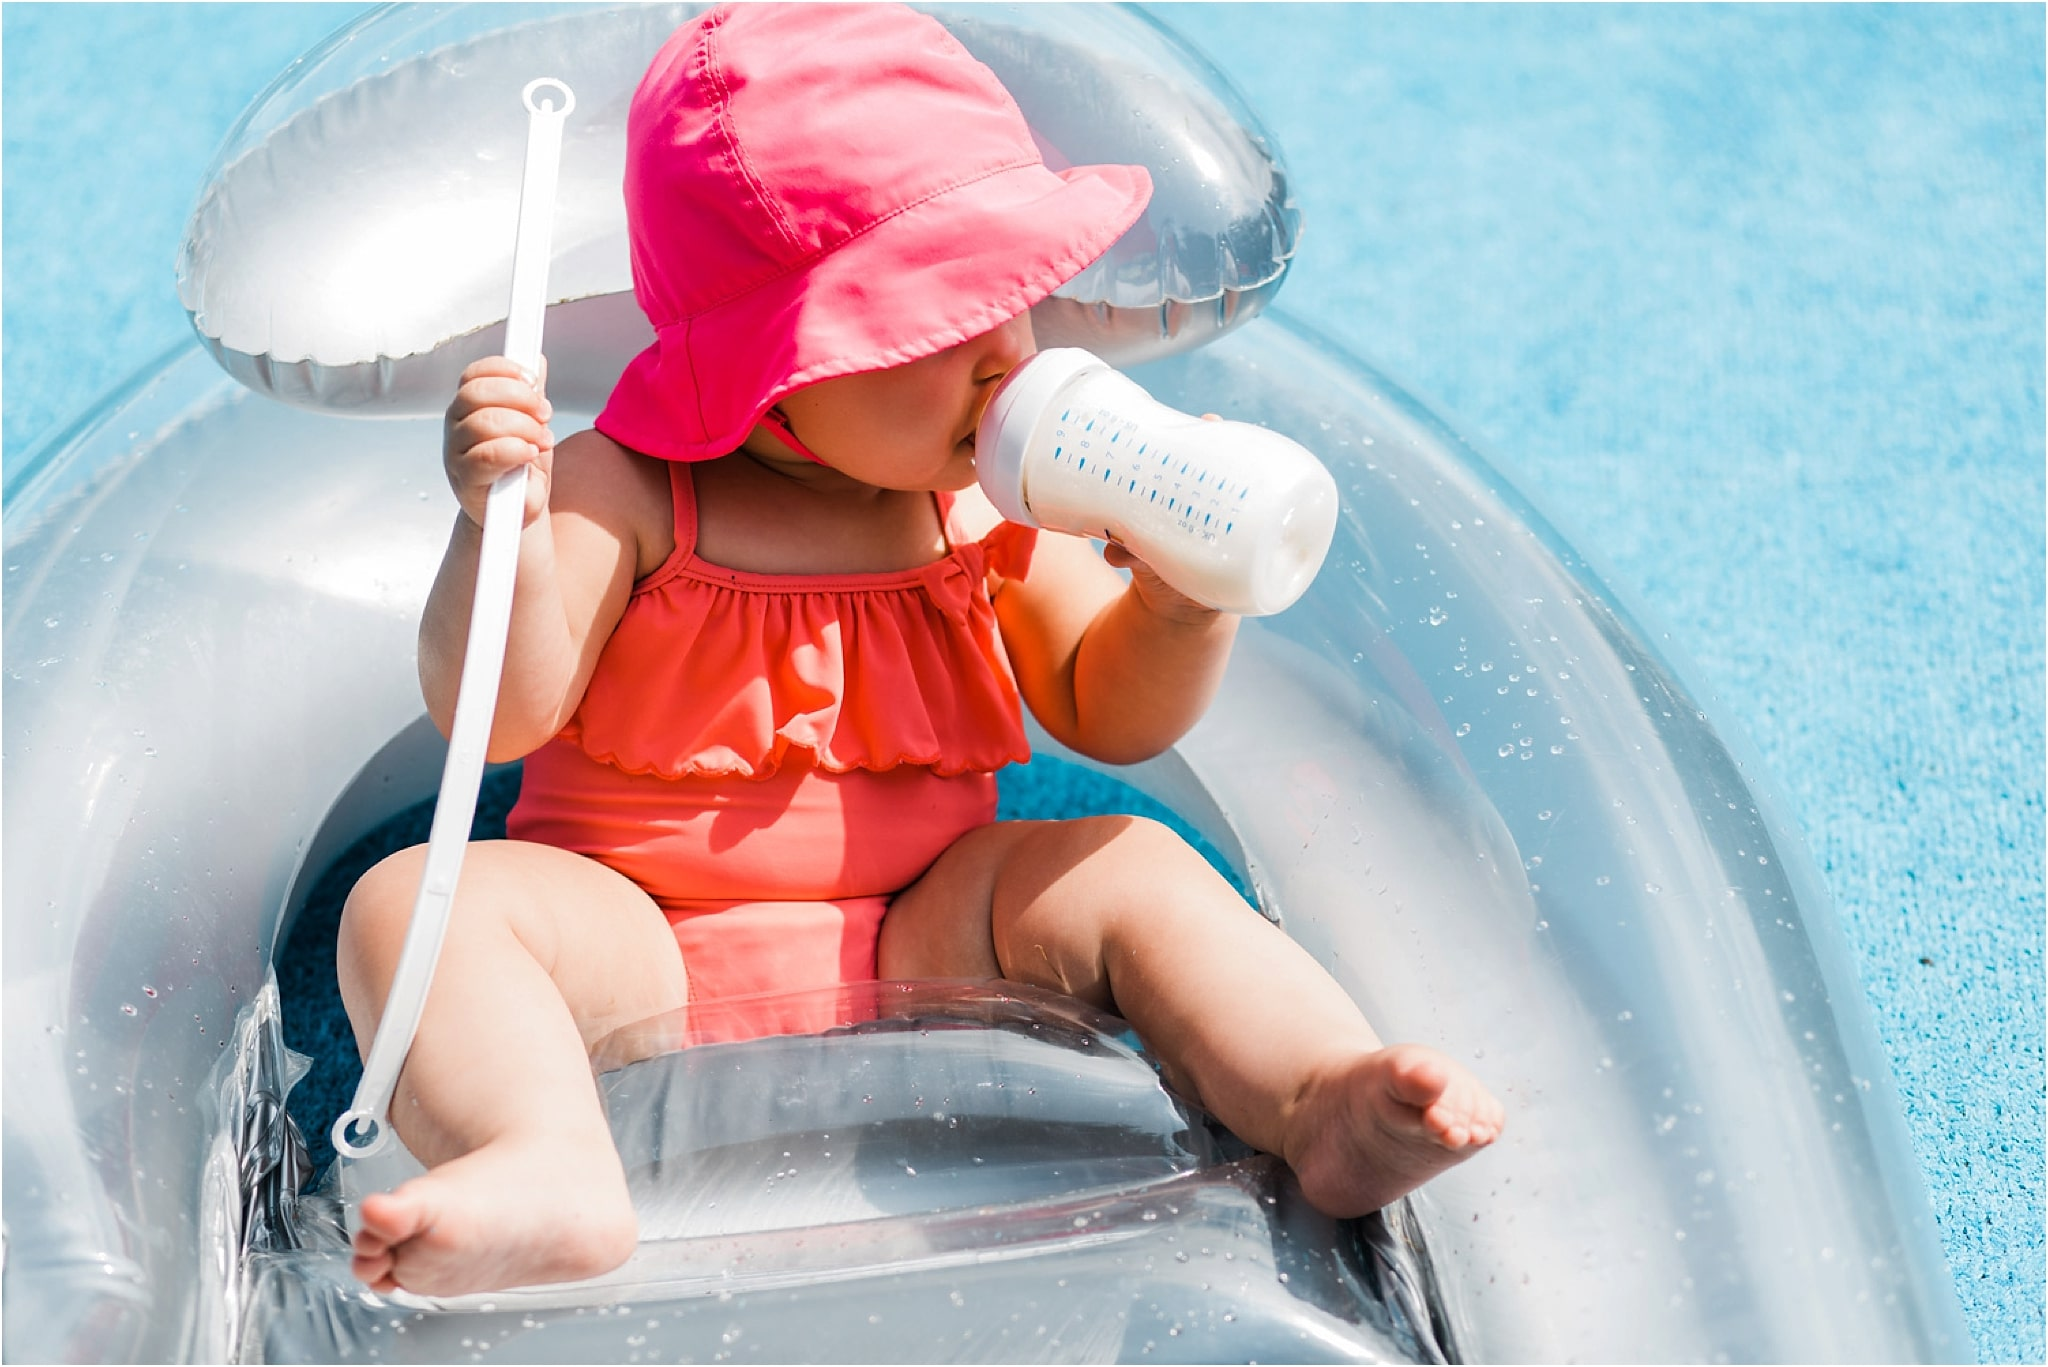 10 month old girl having a bottle at pool